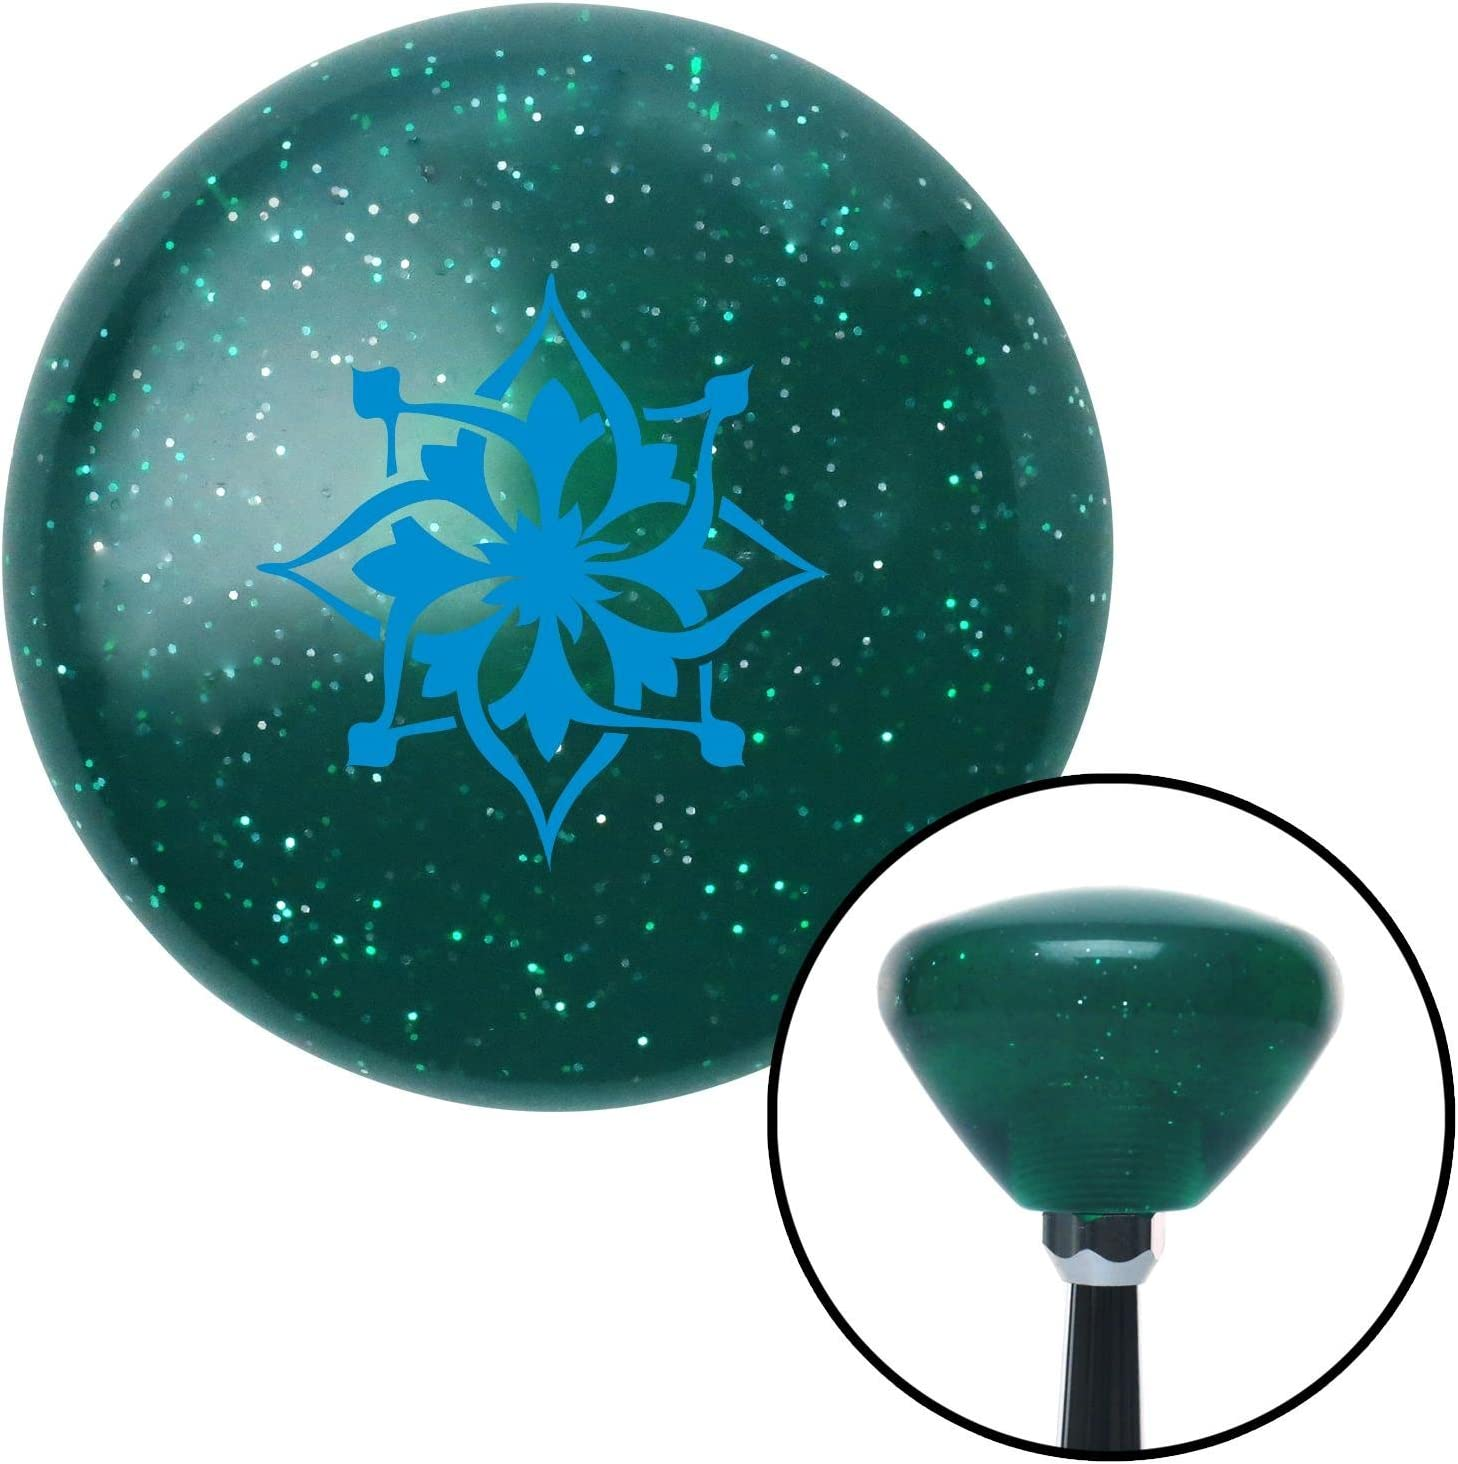 American Shifter 203851 Green Retro Metal Flake Shift Knob with M16 x 1.5 Insert Blue Abstract Flower